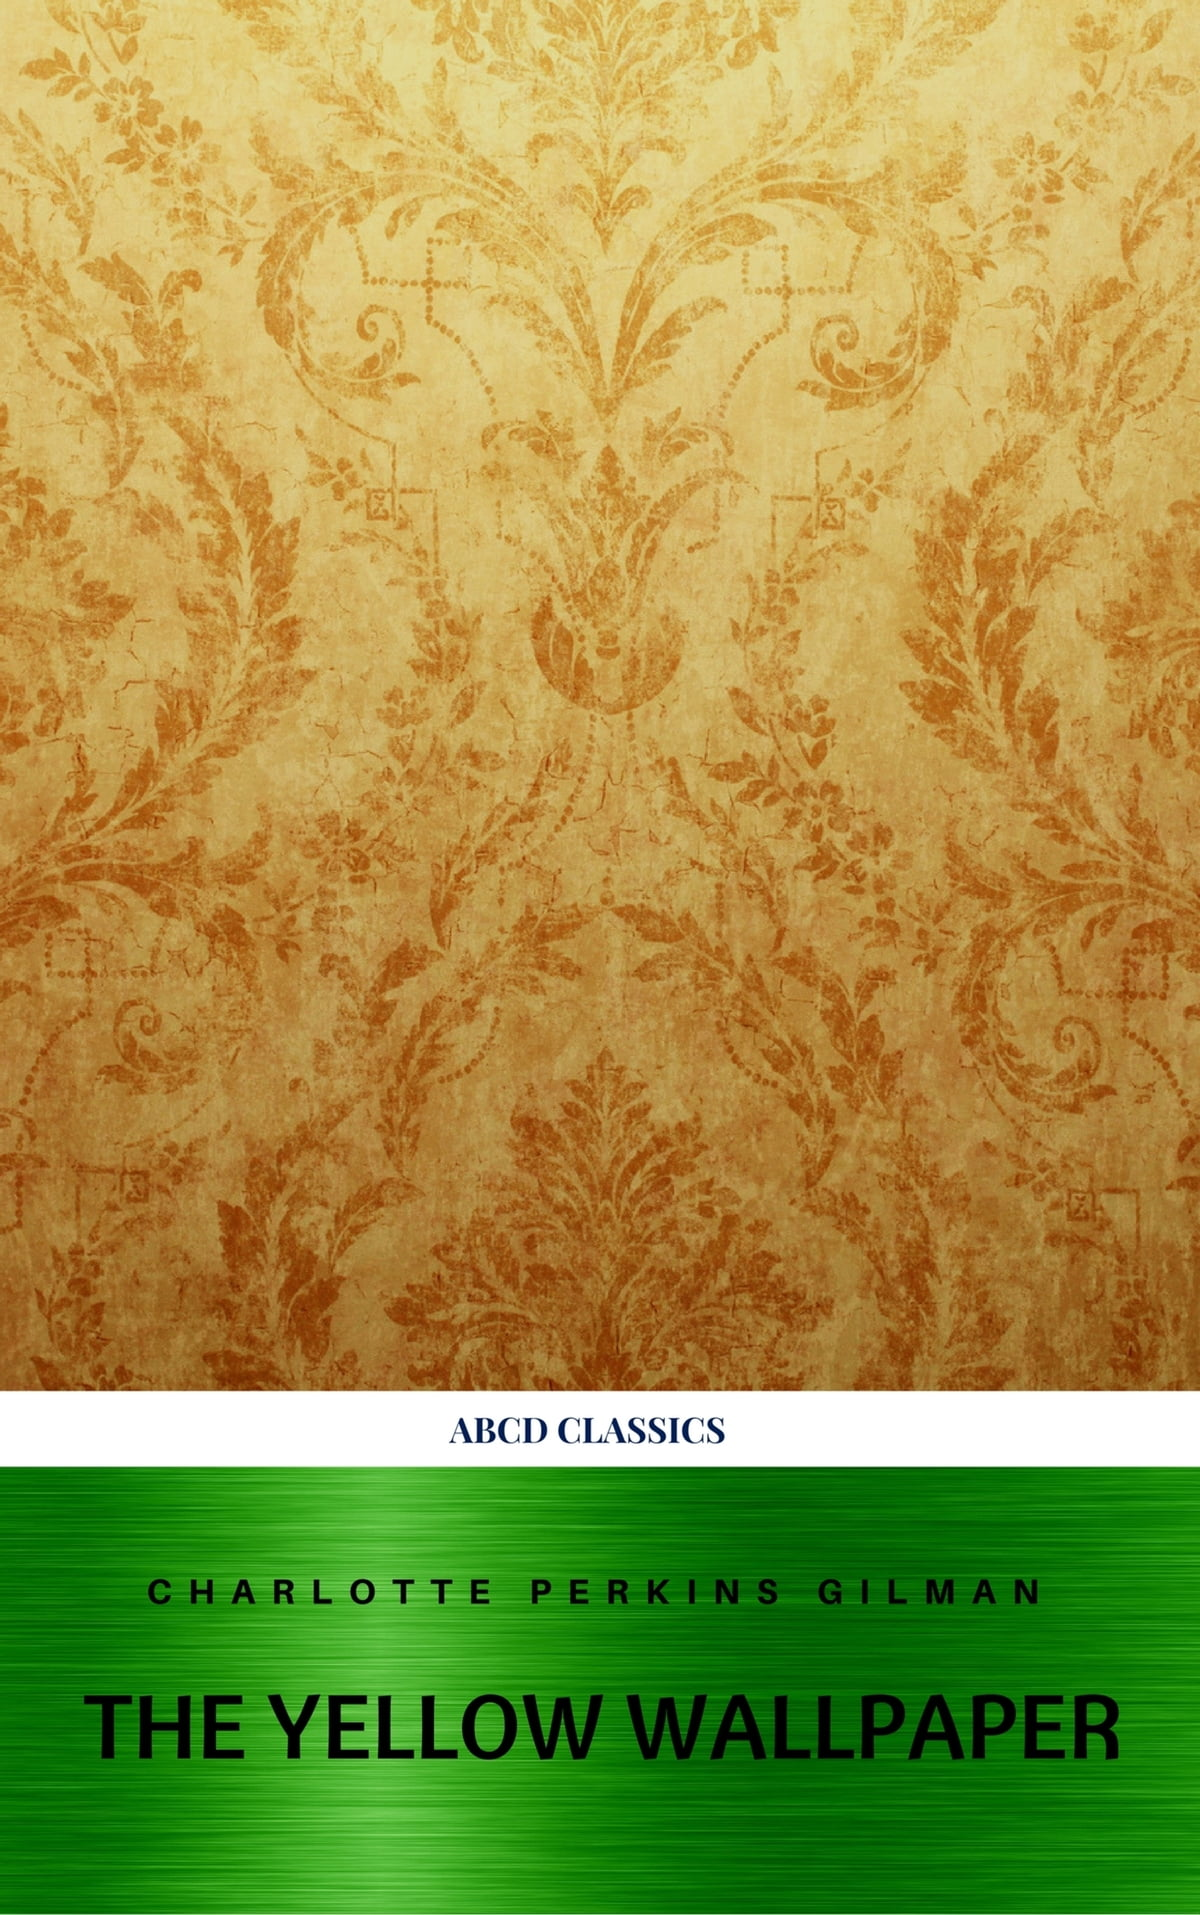 The Yellow Wallpaper and Other Stories eBook by Charlotte Perkins Gilman - 9782377936267 | Rakuten Kobo